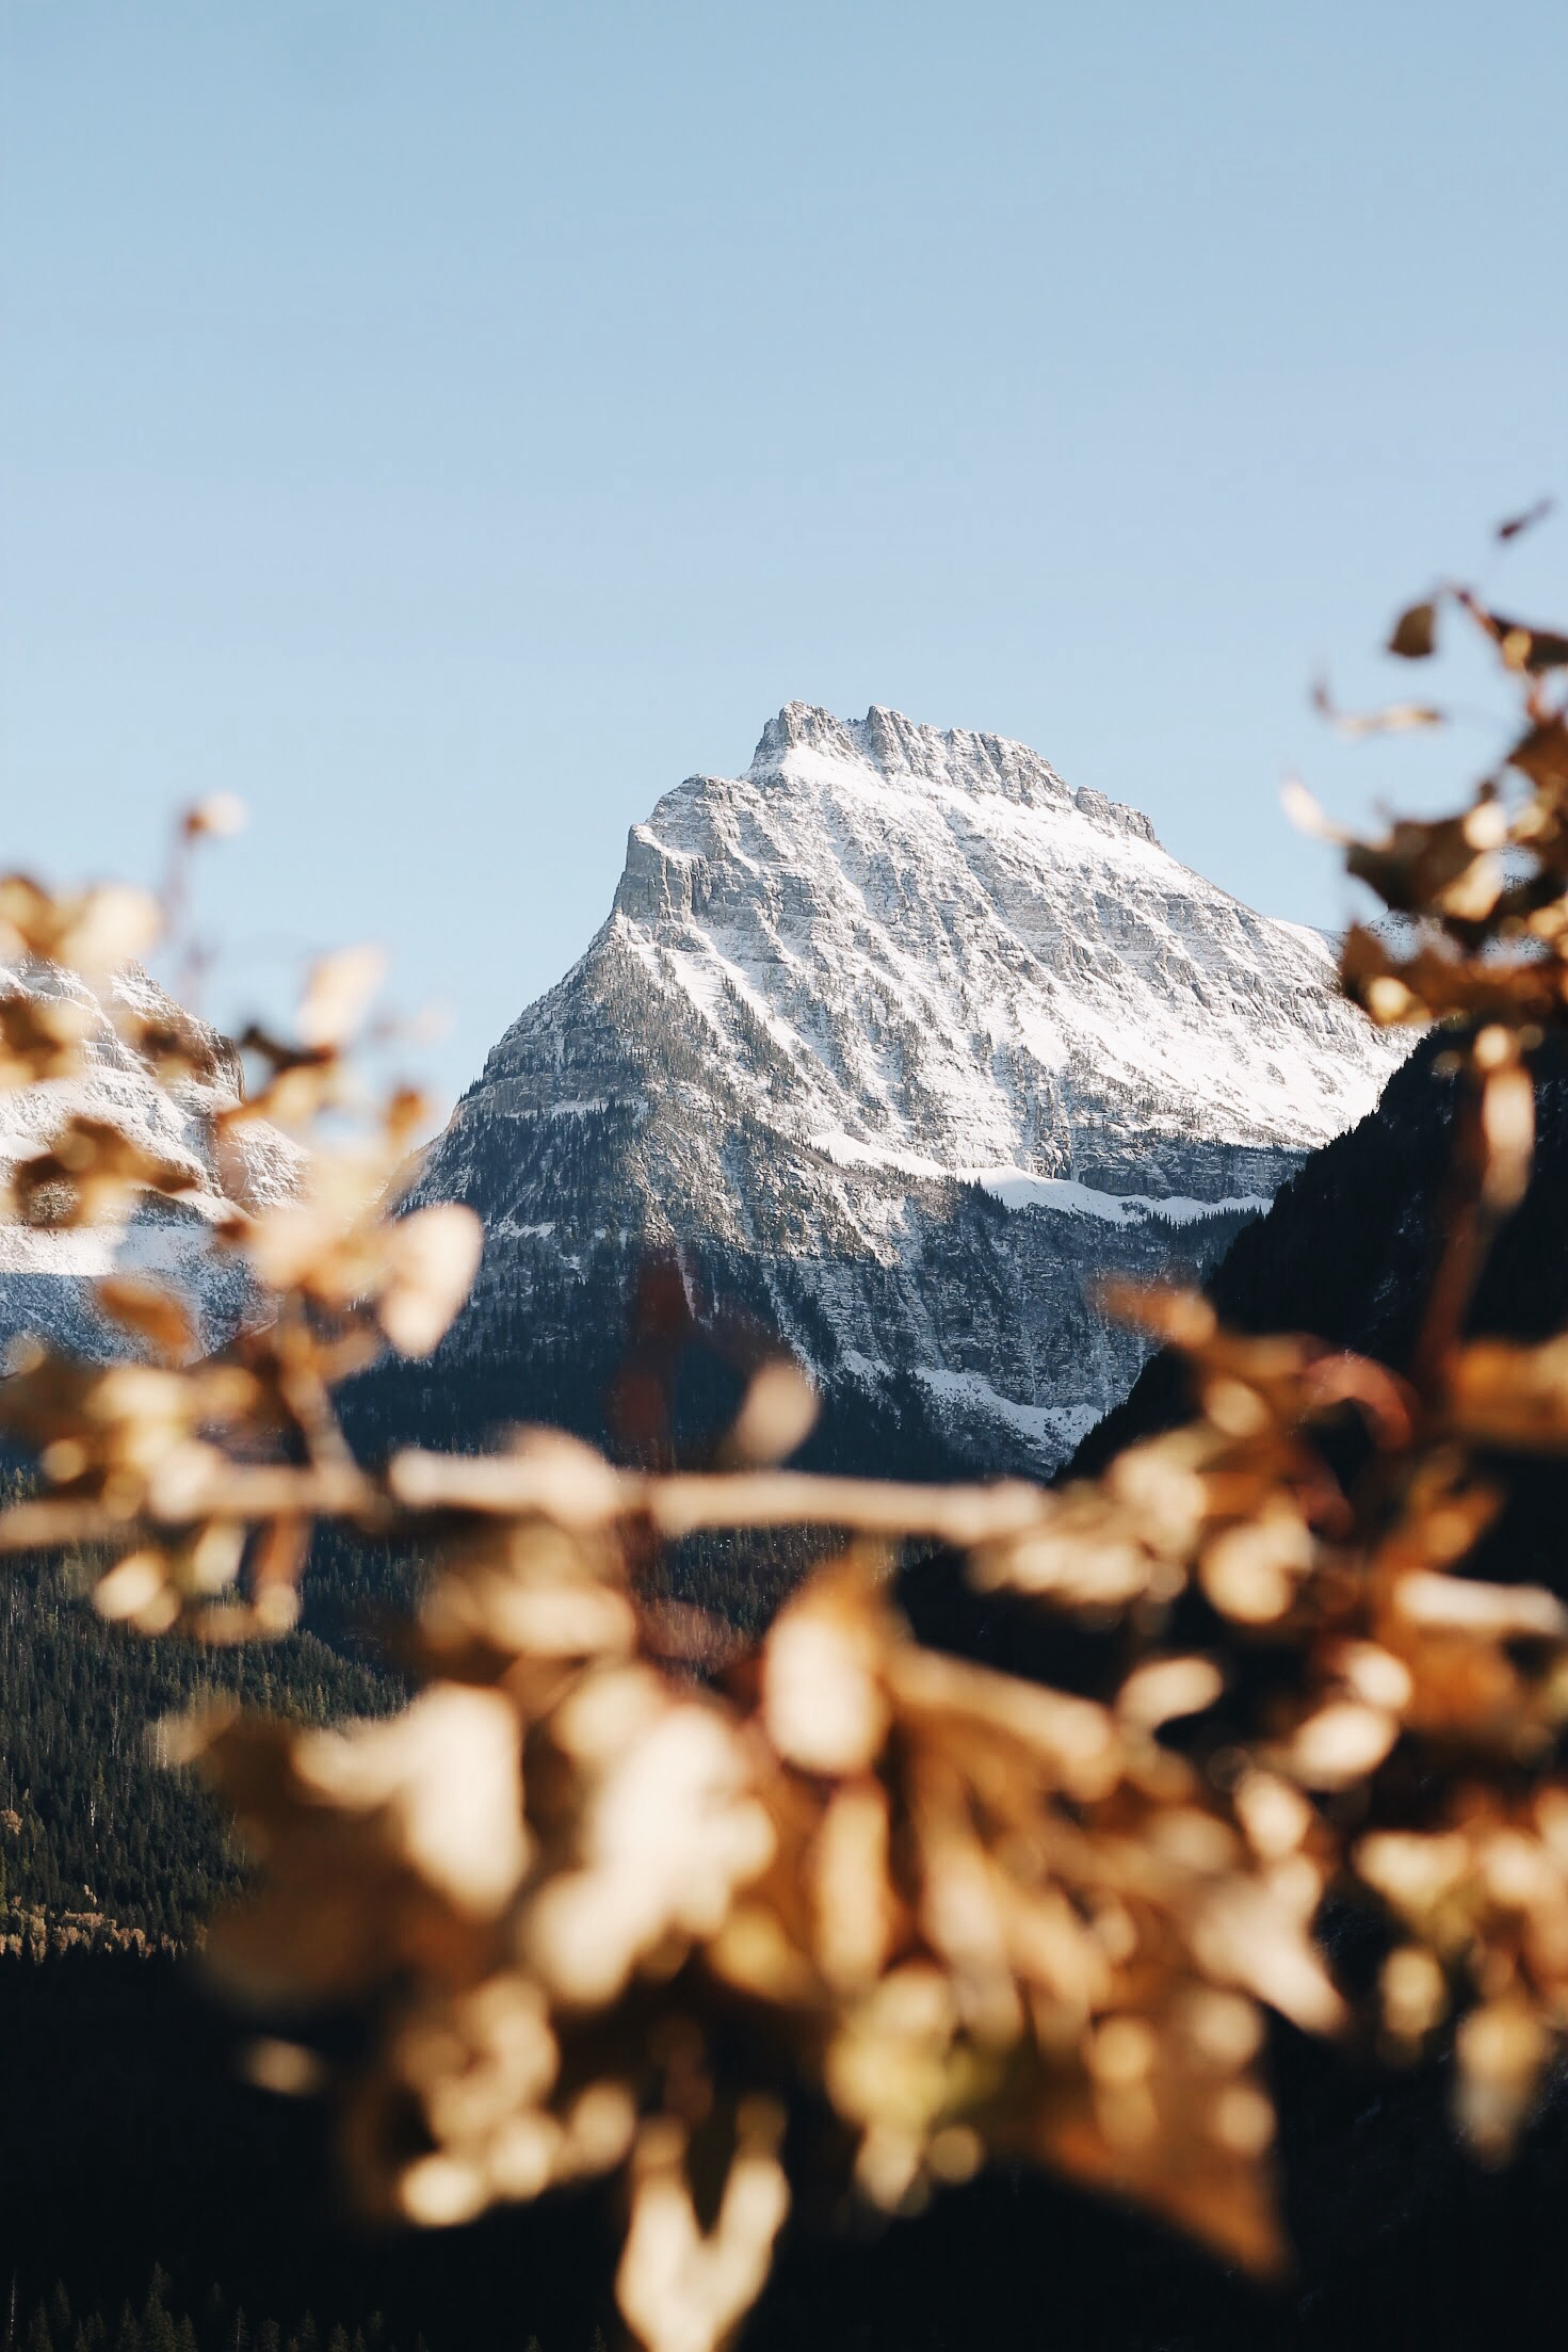 103060 download wallpaper Nature, Mountain, Vertex, Top, Snow Covered, Snowbound, Branch, Landscape screensavers and pictures for free